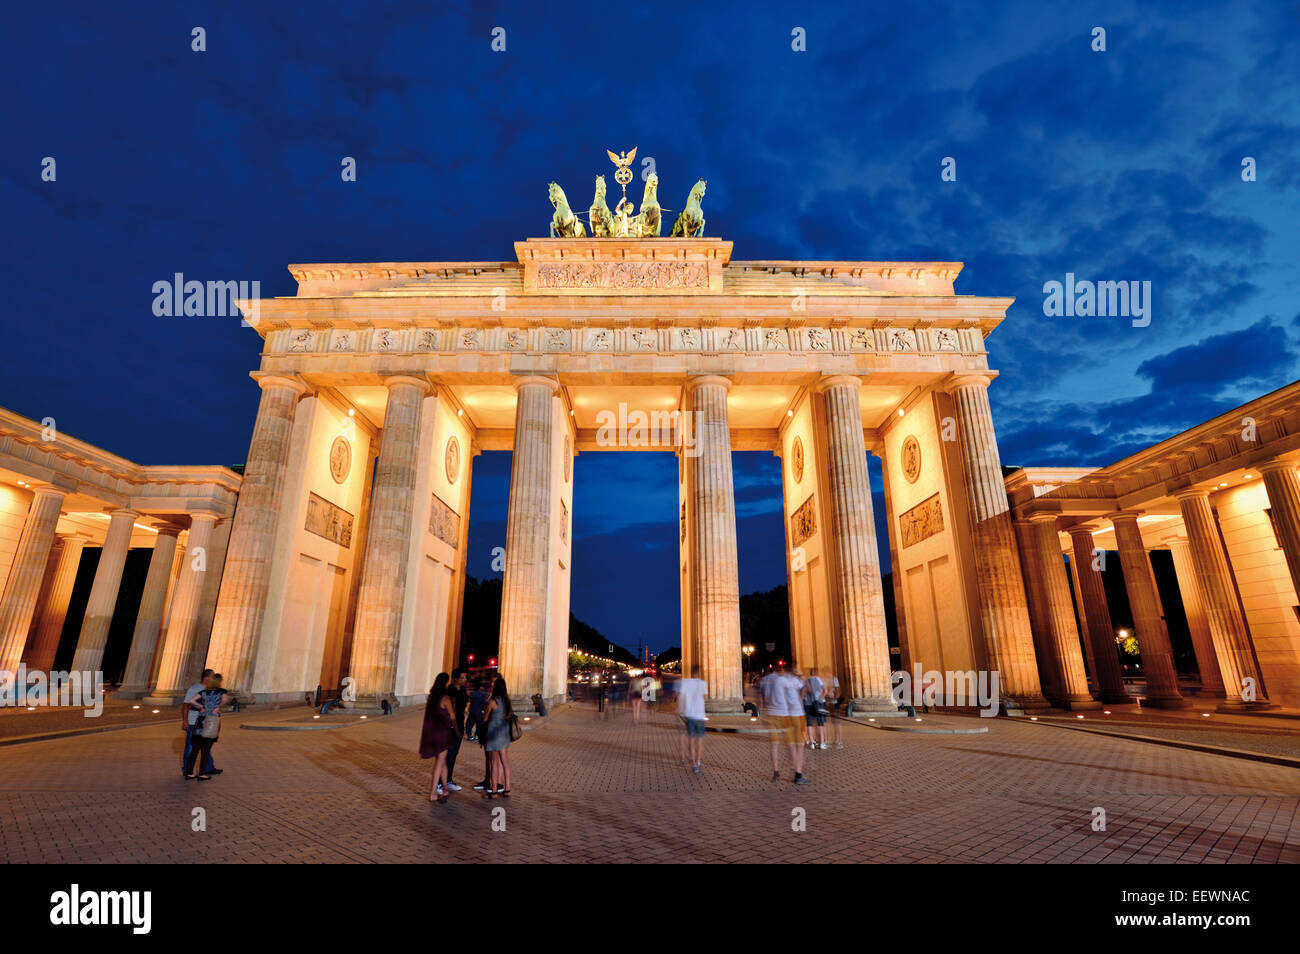 Germany, Berlin: People taking pictures in front of the Brandenburg Gate at night - Stock Image